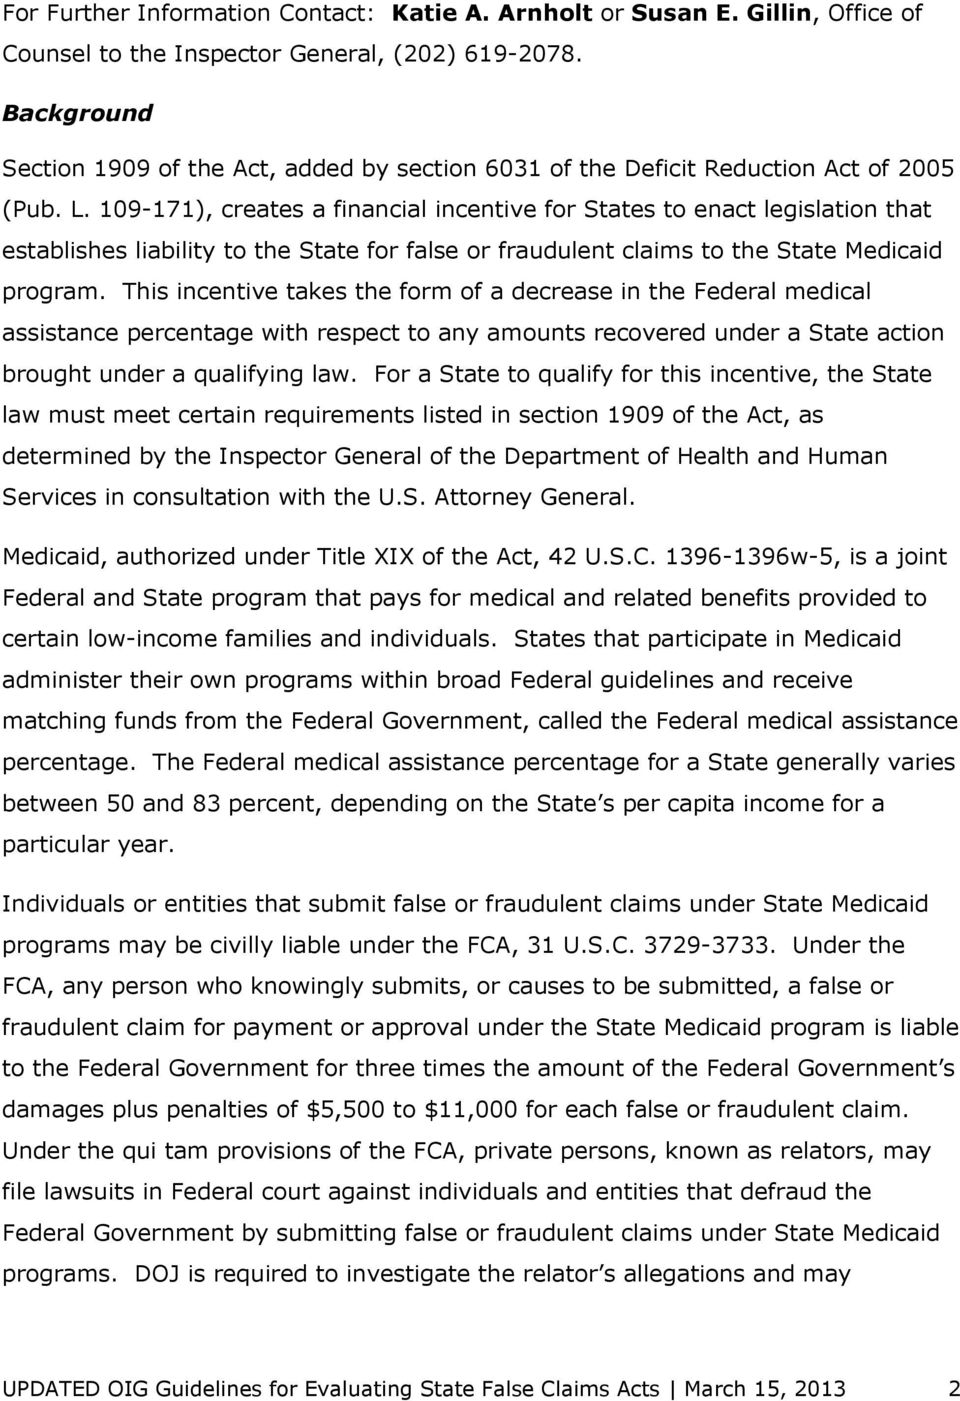 109-171), creates a financial incentive for States to enact legislation that establishes liability to the State for false or fraudulent claims to the State Medicaid program.